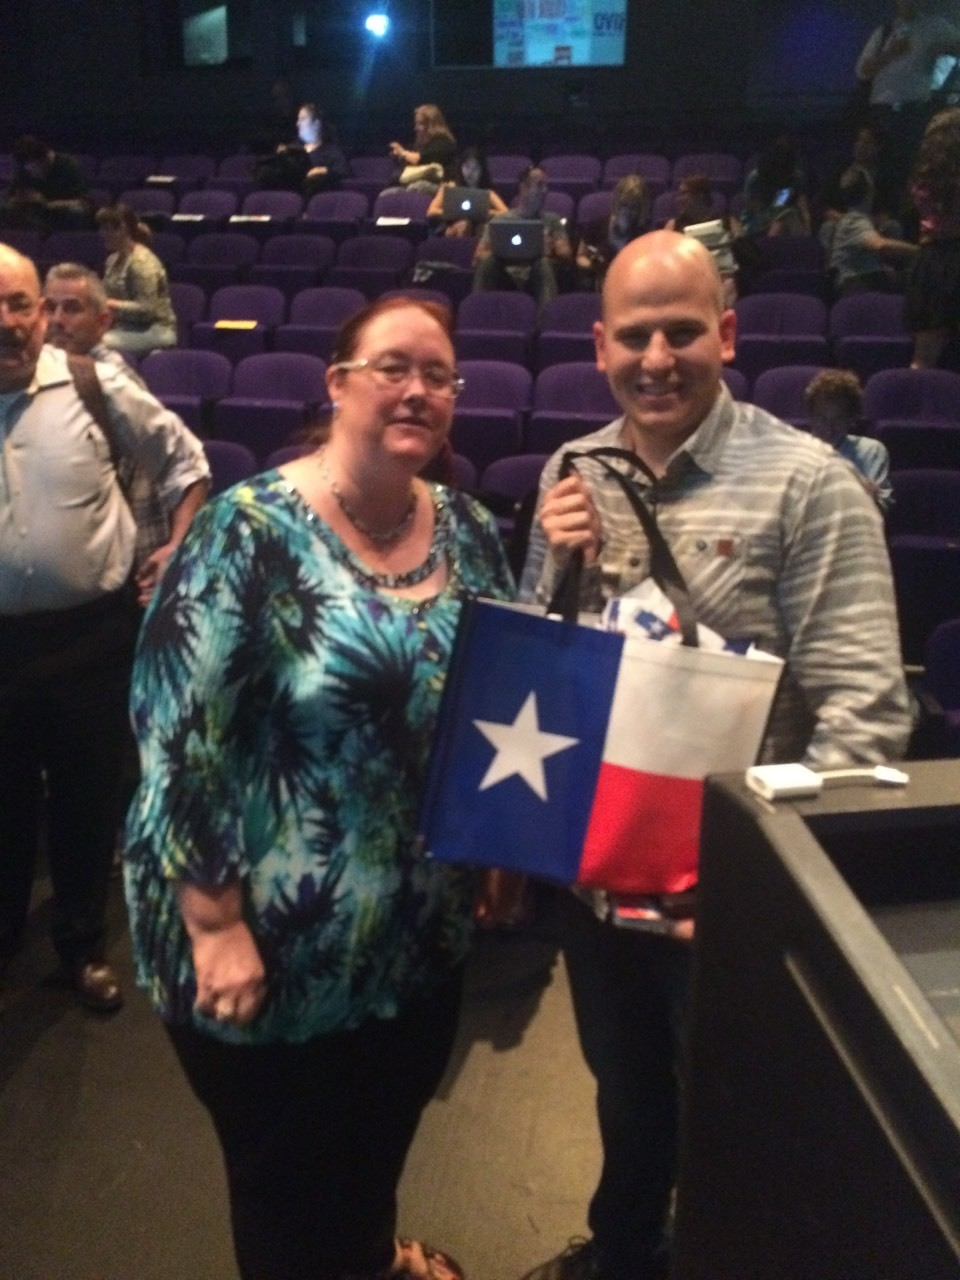 And Stacey with the winner of our Raffle left happy as his girlfriend lives texas and can take a little back to Canada with him.